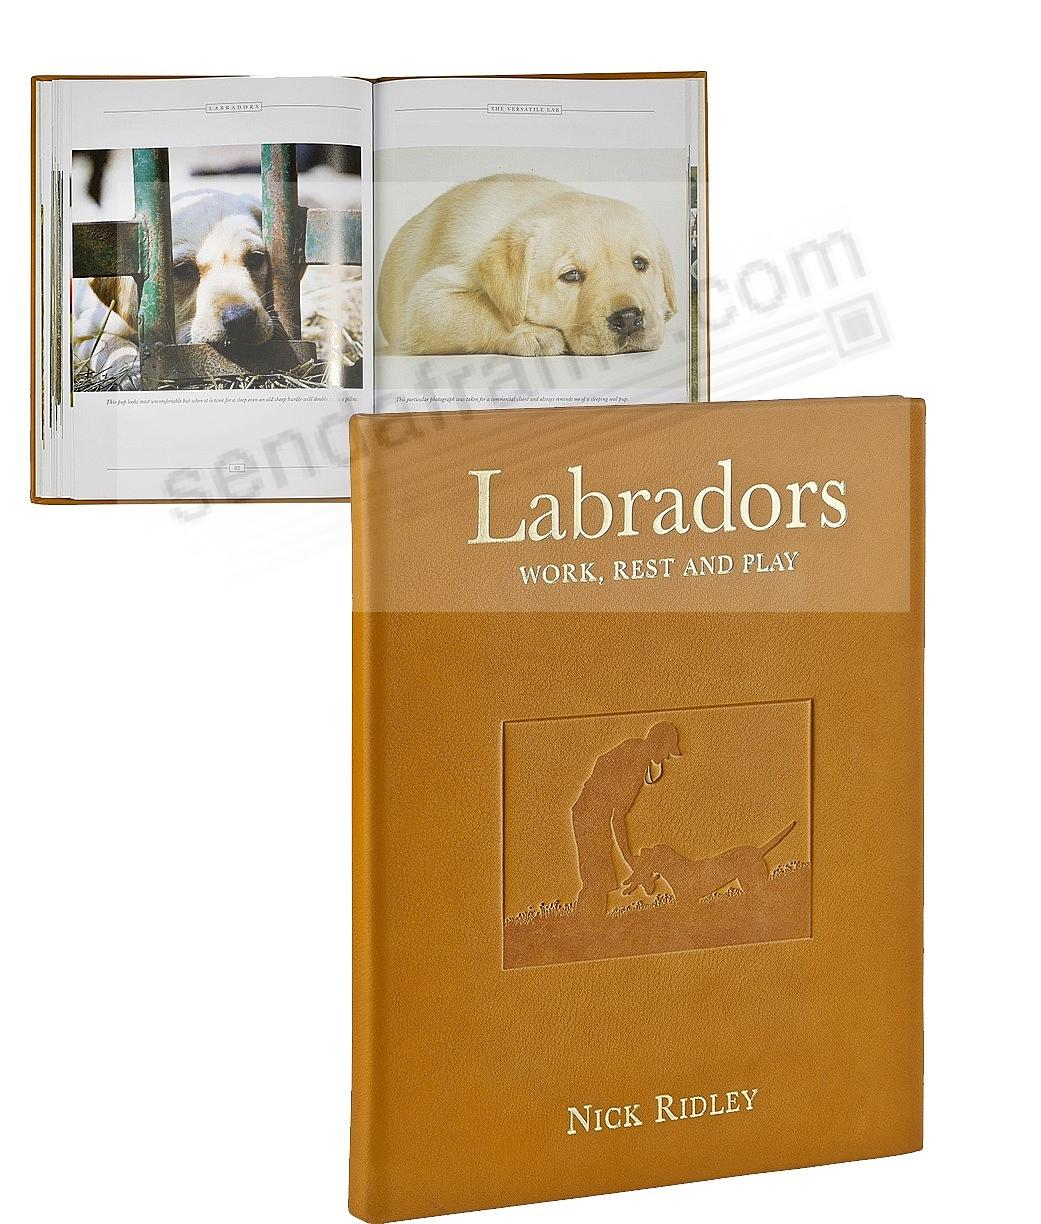 LABRADORS: Work - Rest - and Play special edition book in genuine brown full-grain leather